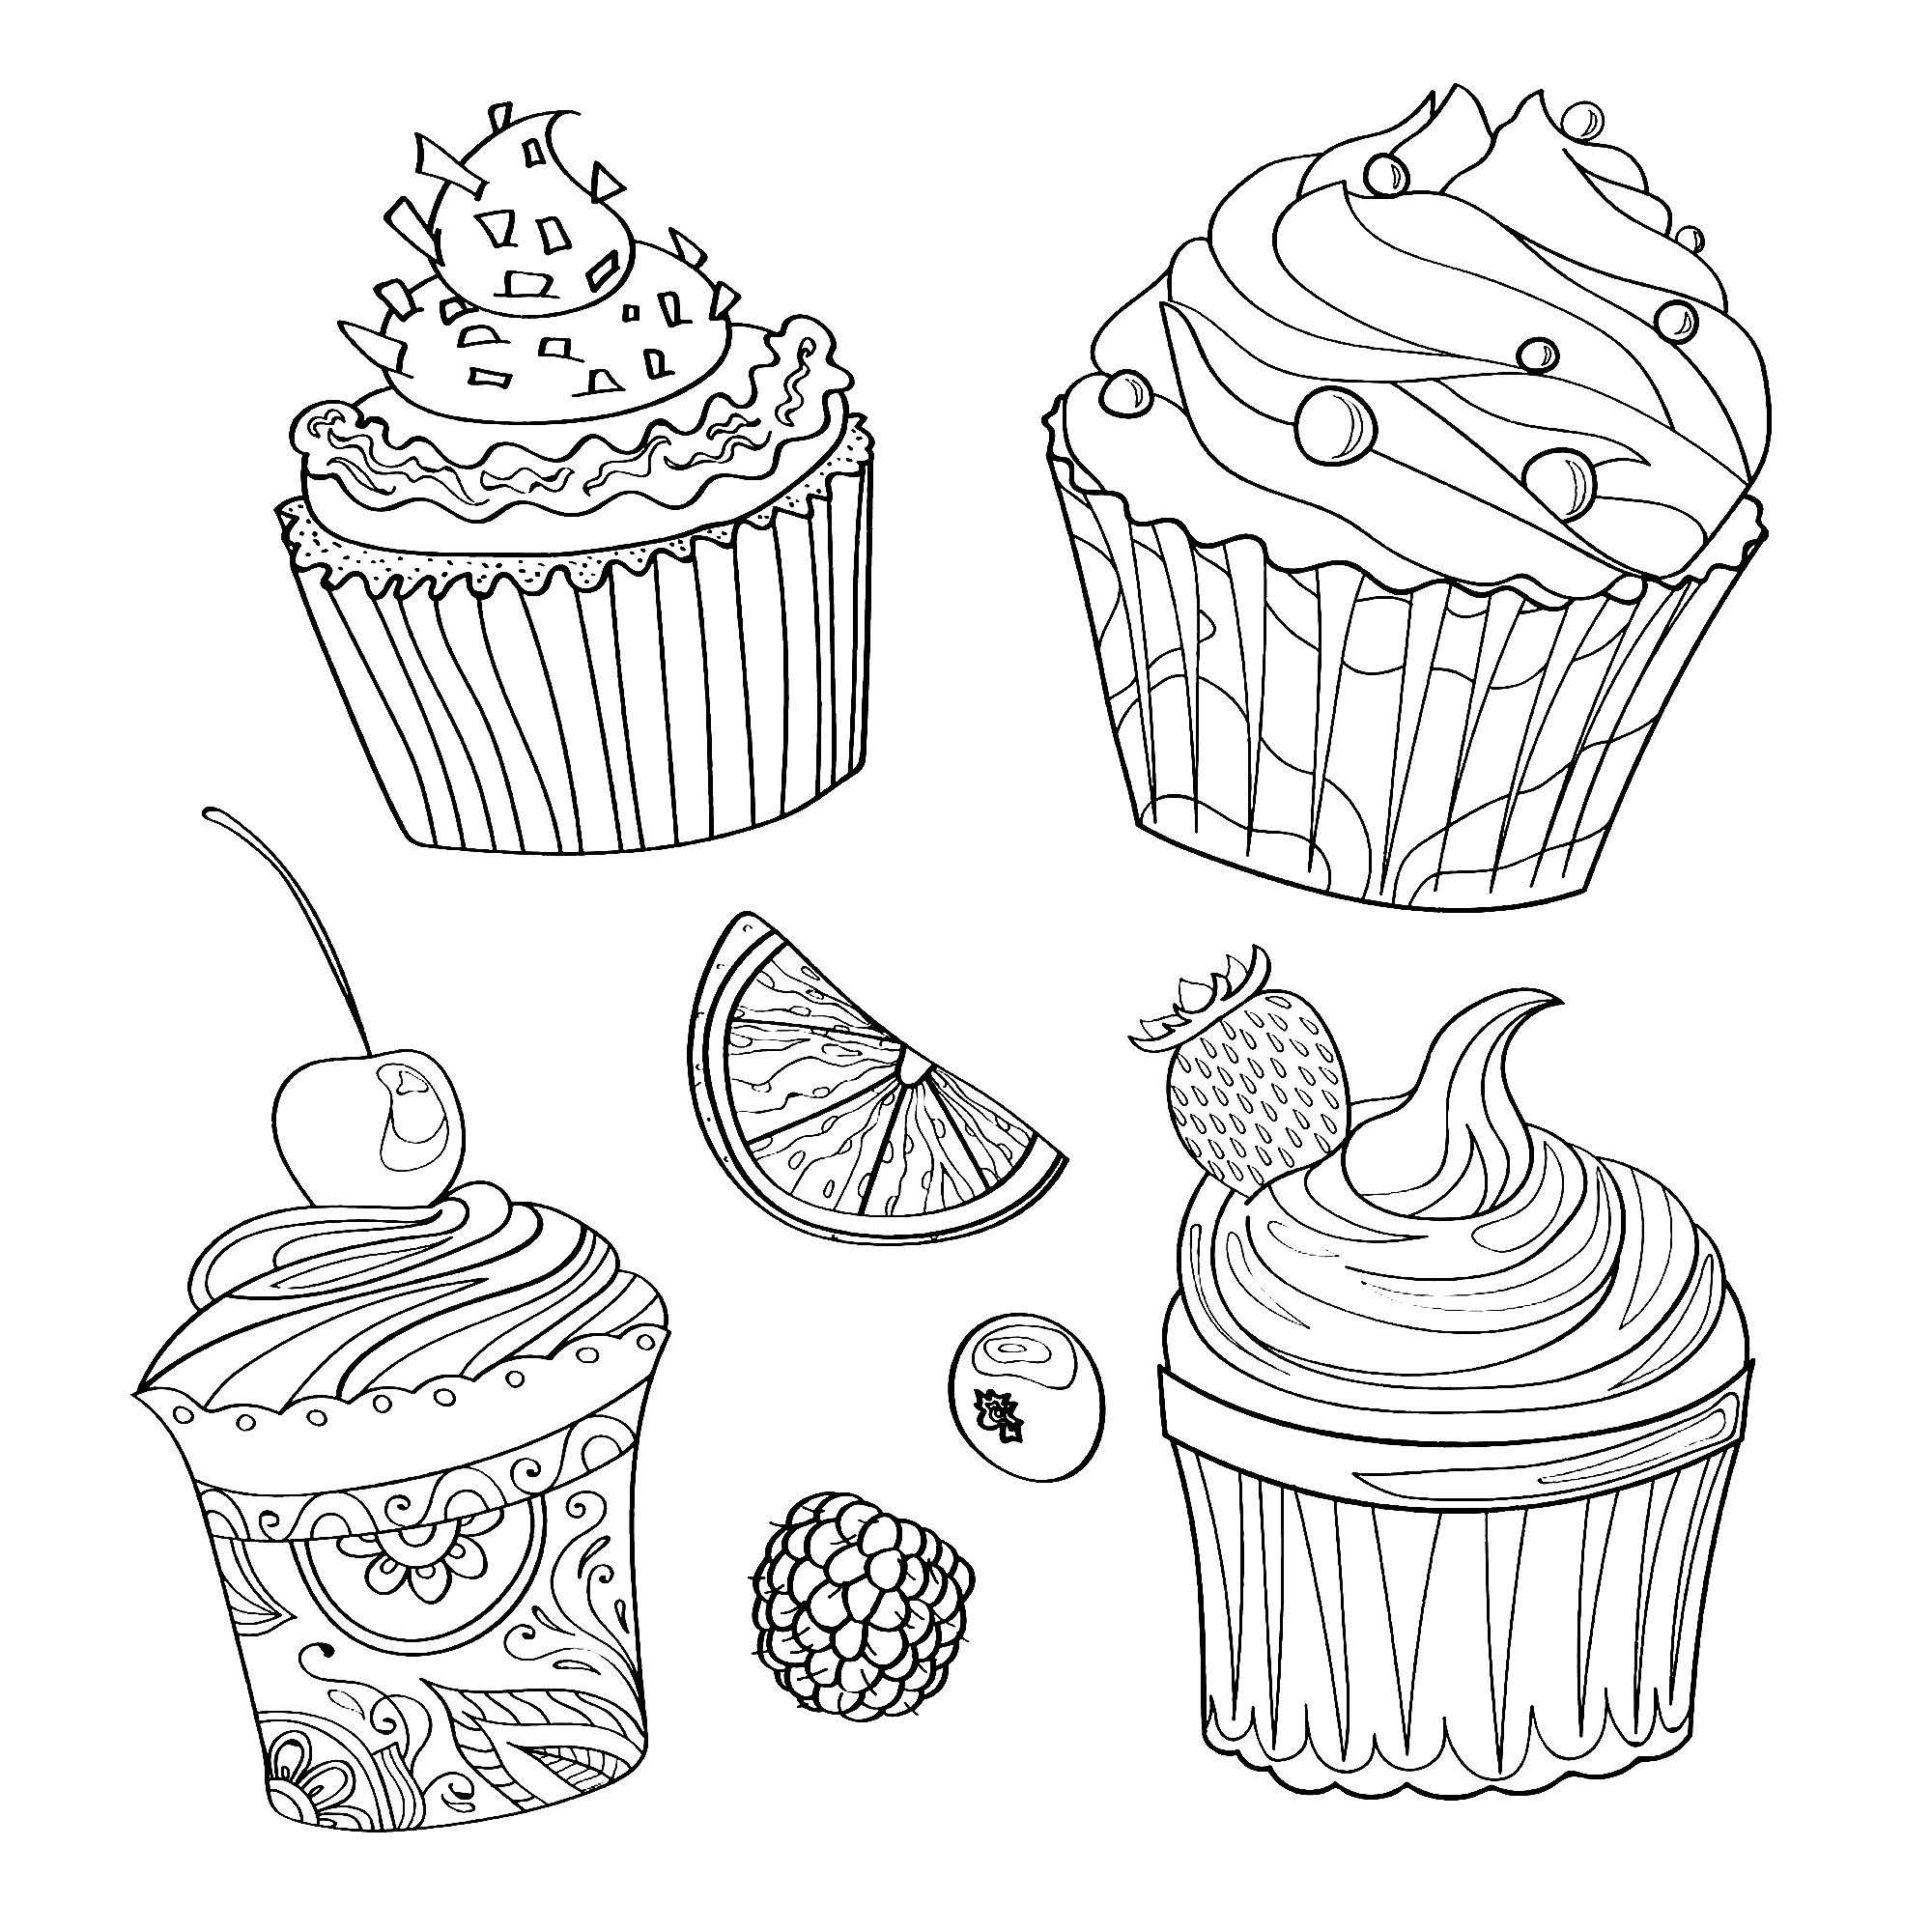 coloring cake for kids cake coloring pages kids cake coloring for